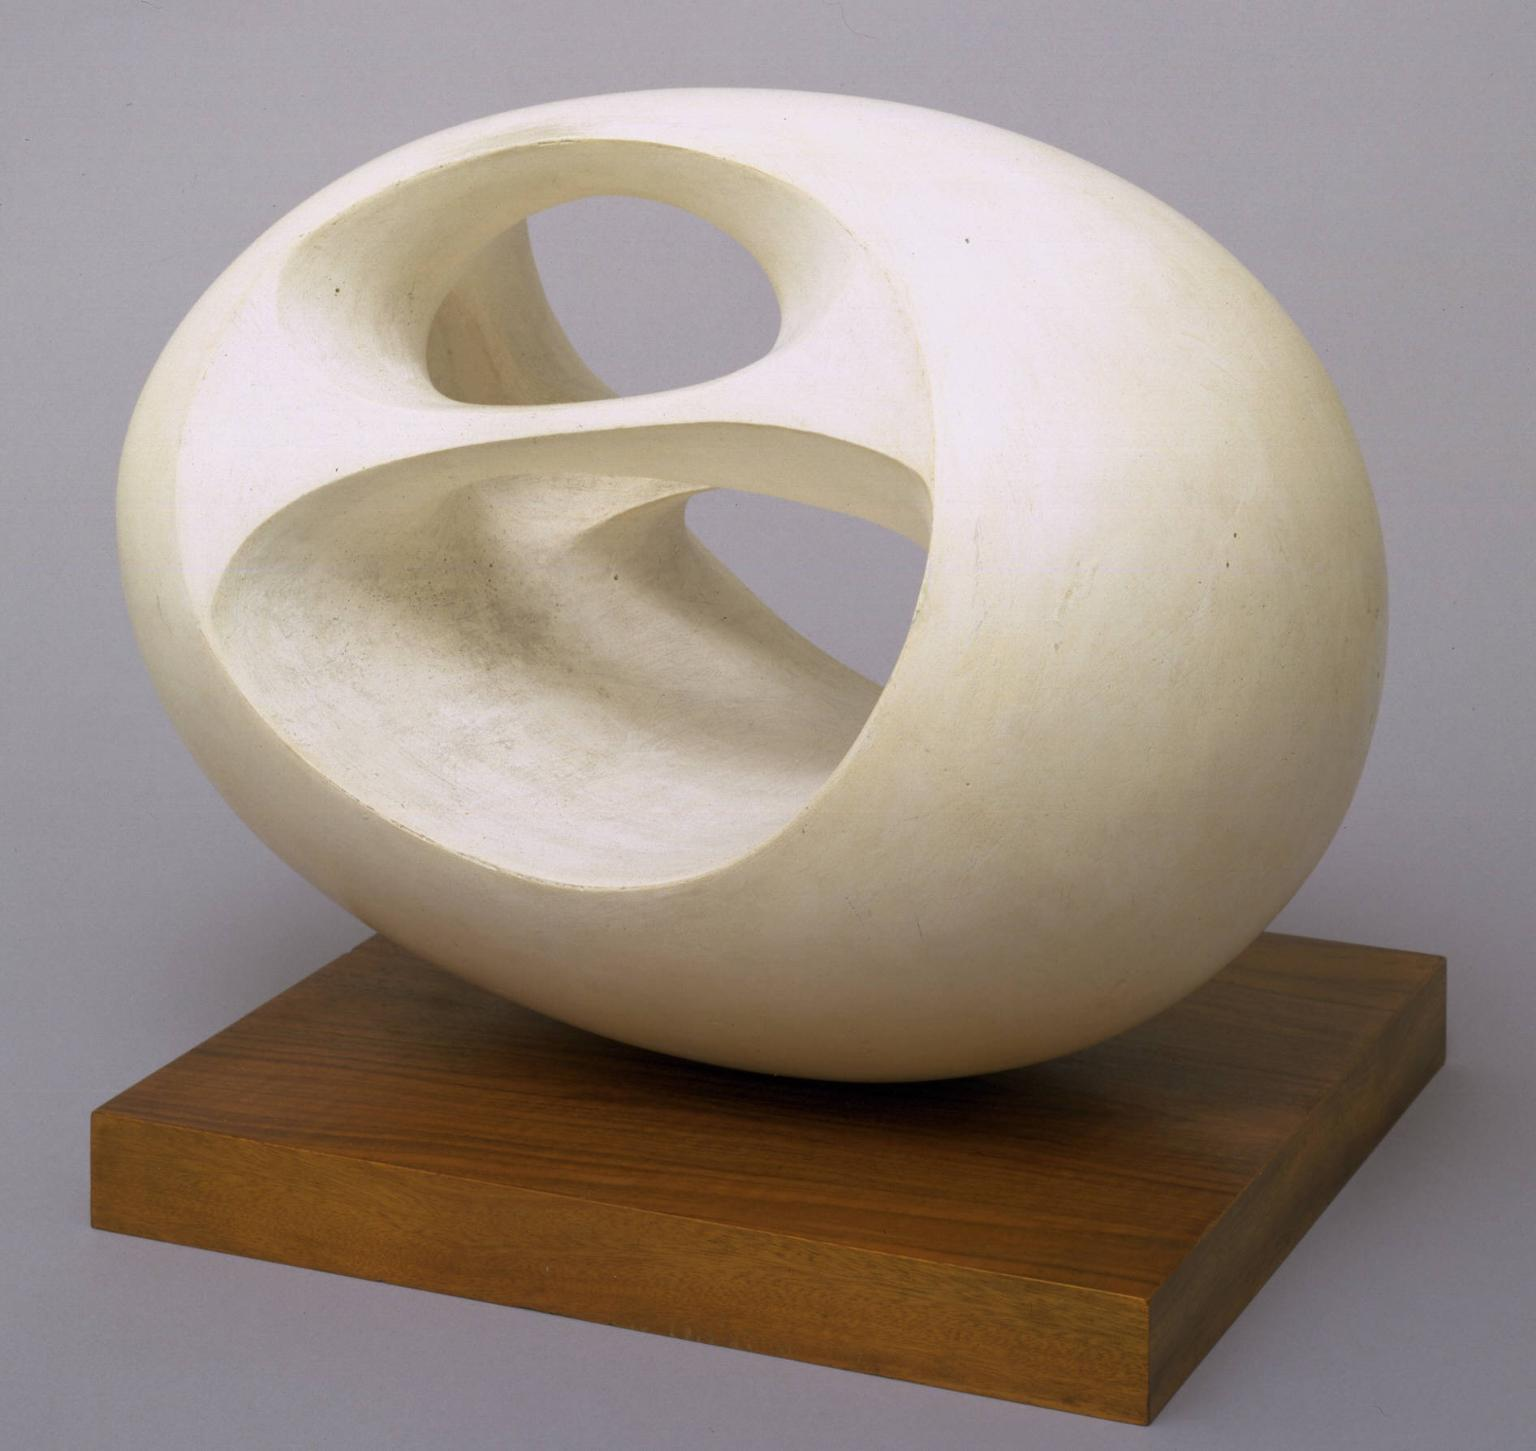 Barbara hepworth lodown magazine for 3d sculpture artists